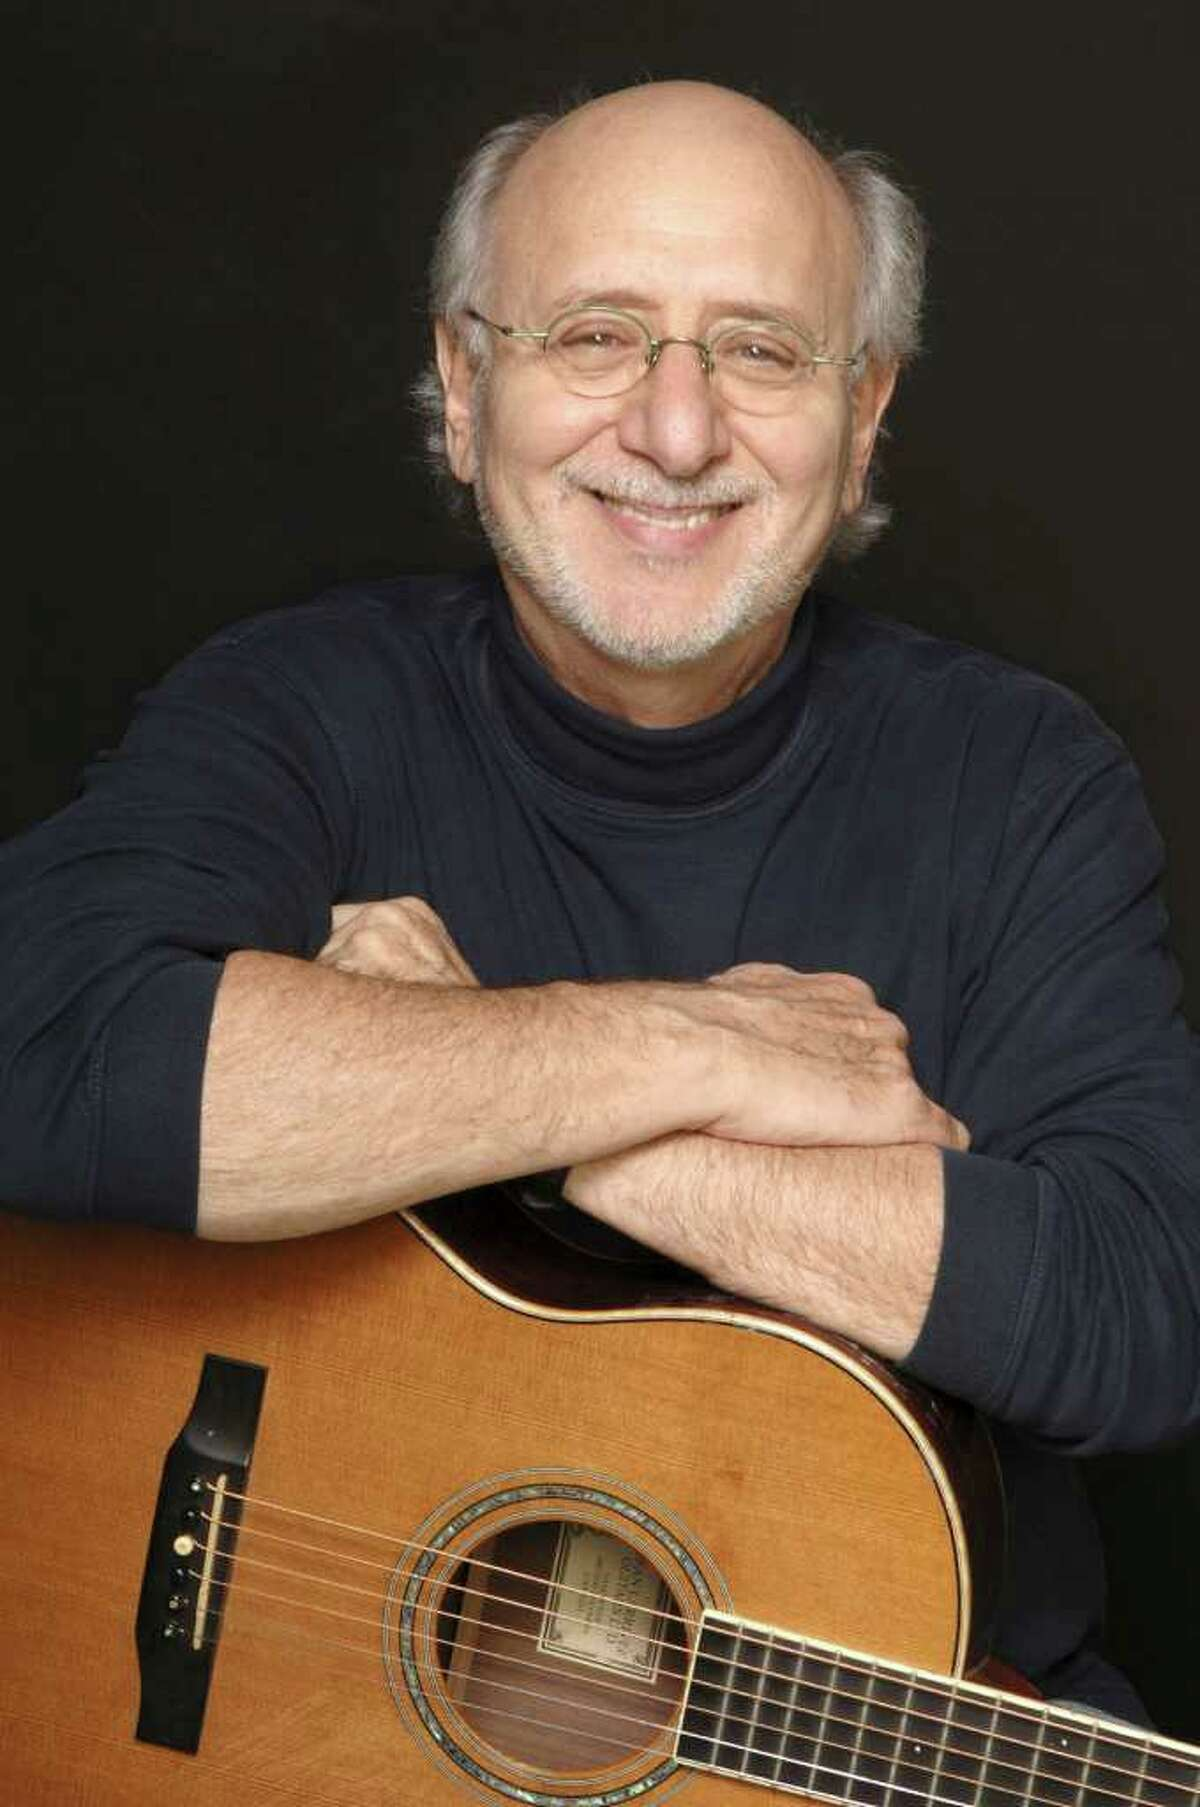 Friends of Autistic People will host a benefit featuring Peter Yarrow of Peter, Paul and Mary fame on May 4 at a Greenwich waterfront home to raise funds for FAPí' GREEN Farm Academy Project for people with autism. The project is intended to be a teaching facility on a small village campus, where adult over 21 years old with autism will live, enjoy nature-based education, learn skills including growing flowers and vegetables, food preparation, animal care, arts and crafts, and office, farm and academic skills.